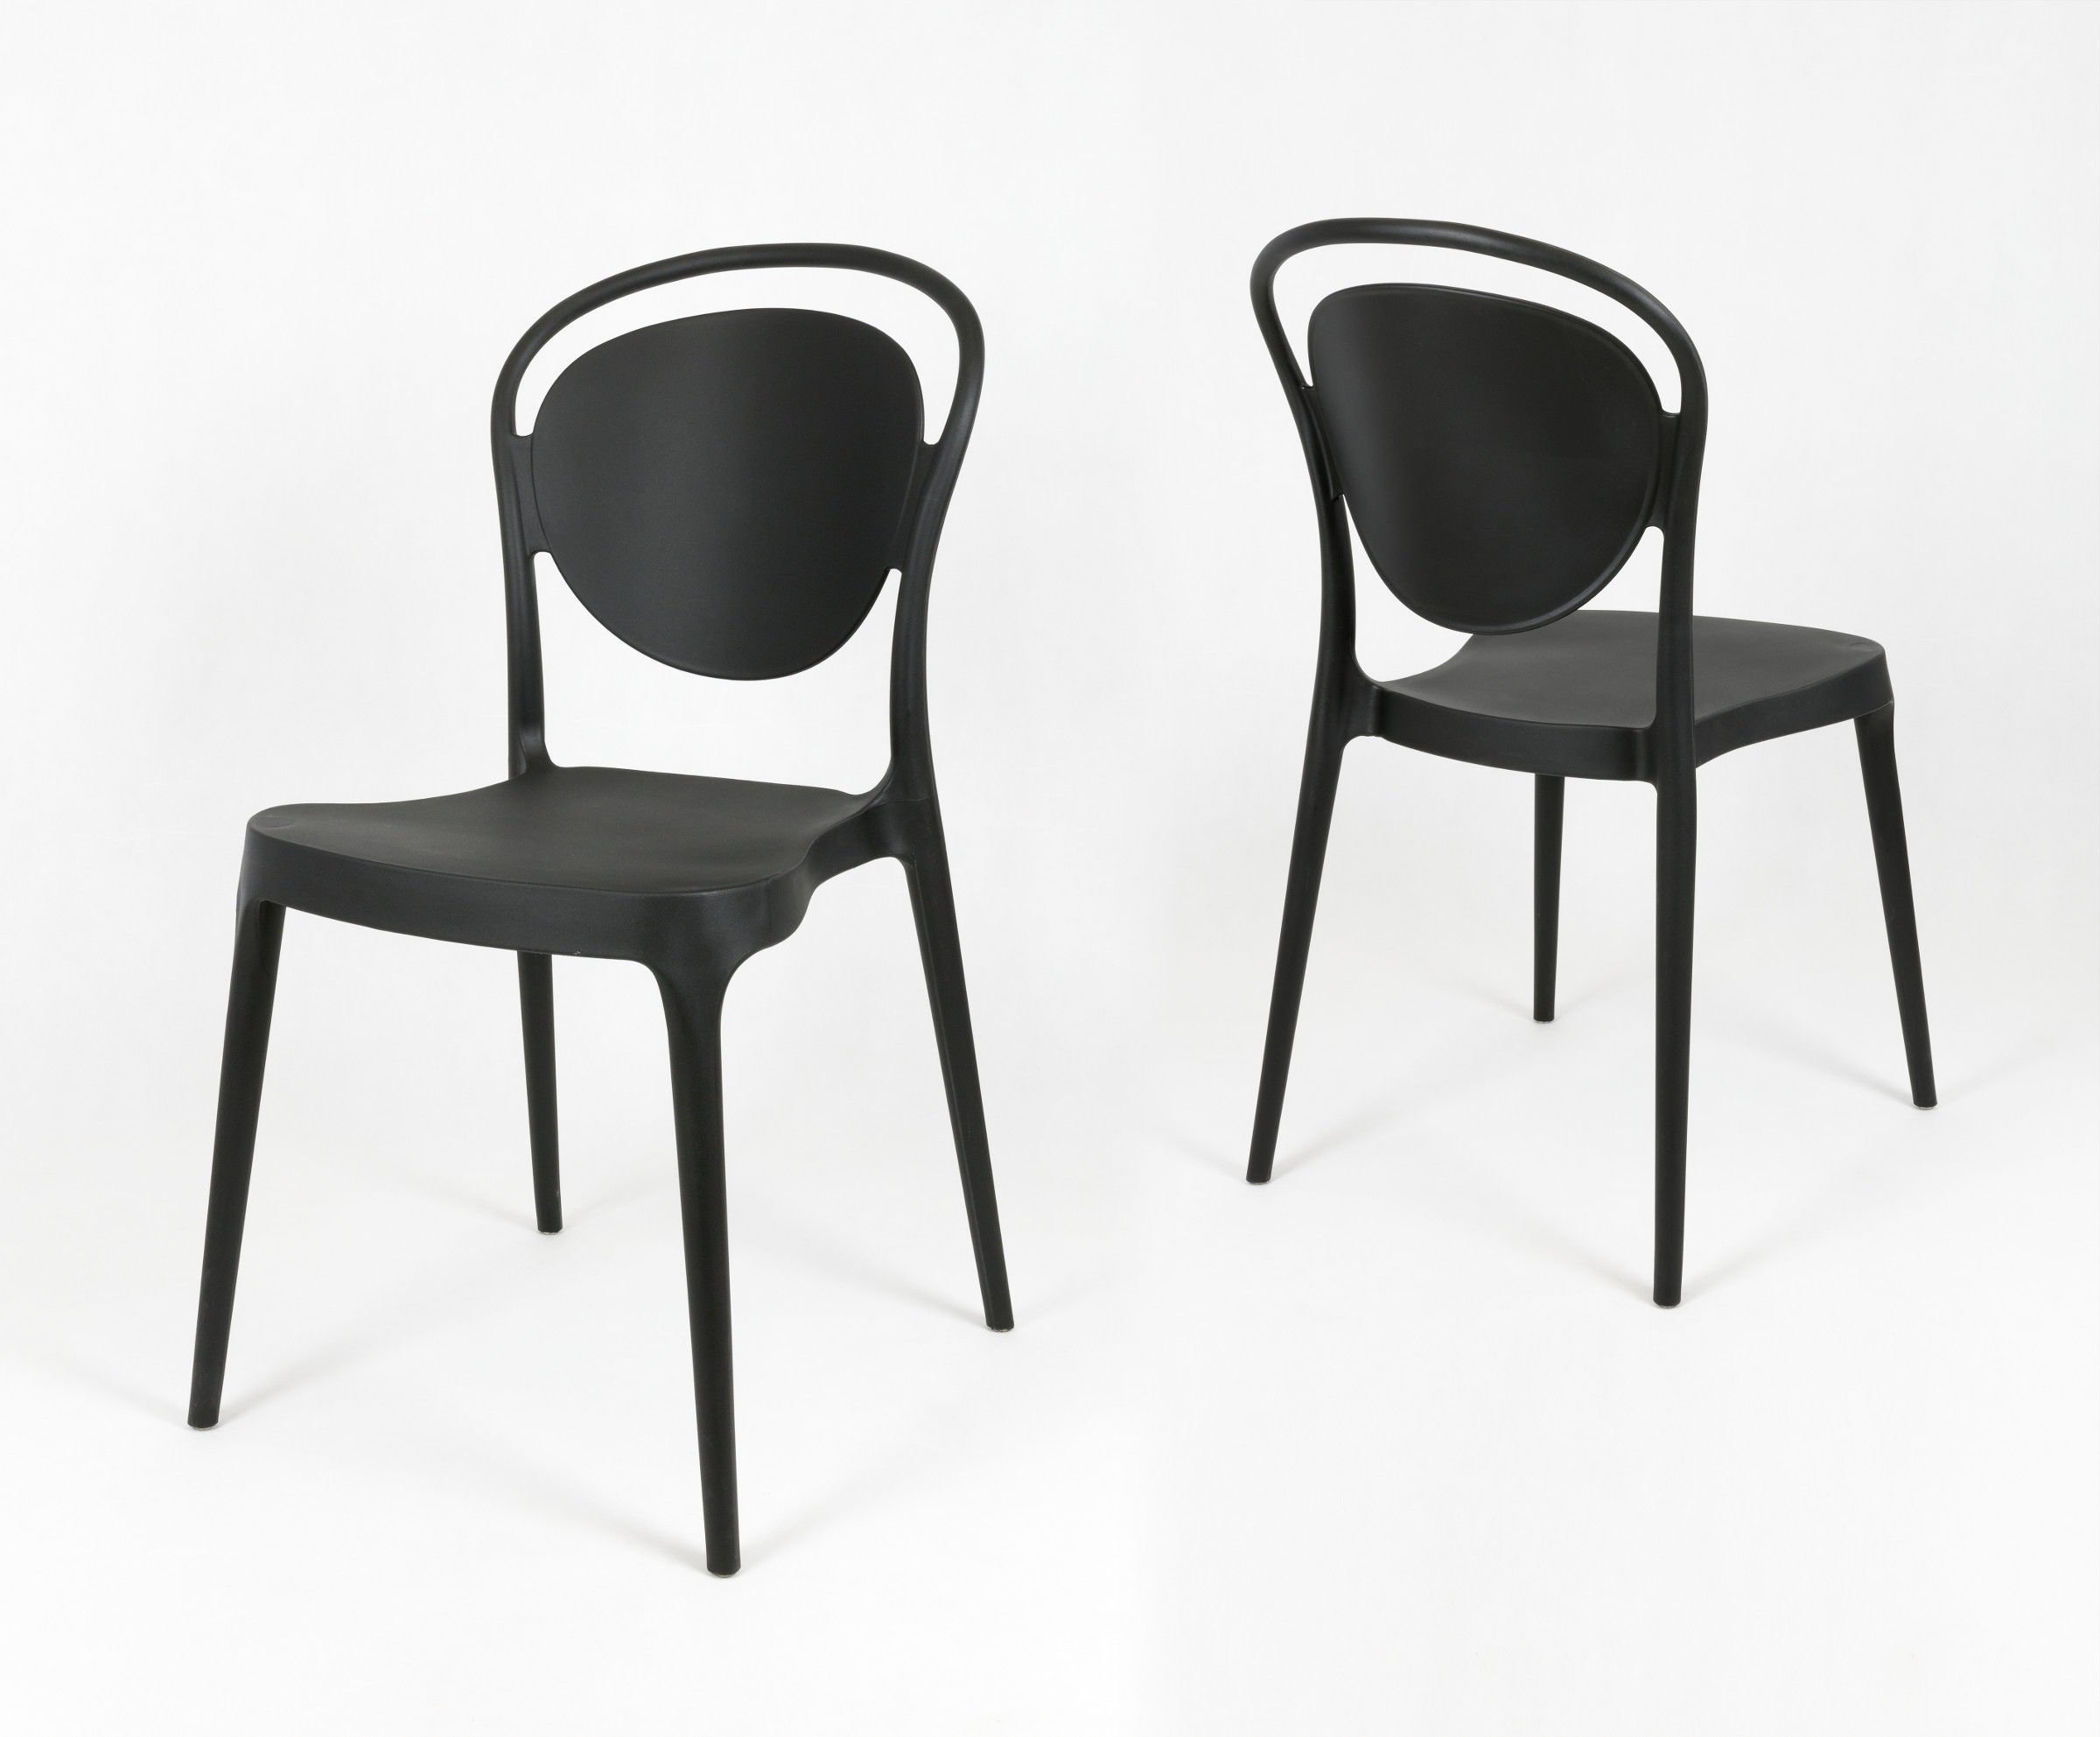 Sk design kr055 black polypropylene chair click to zoom